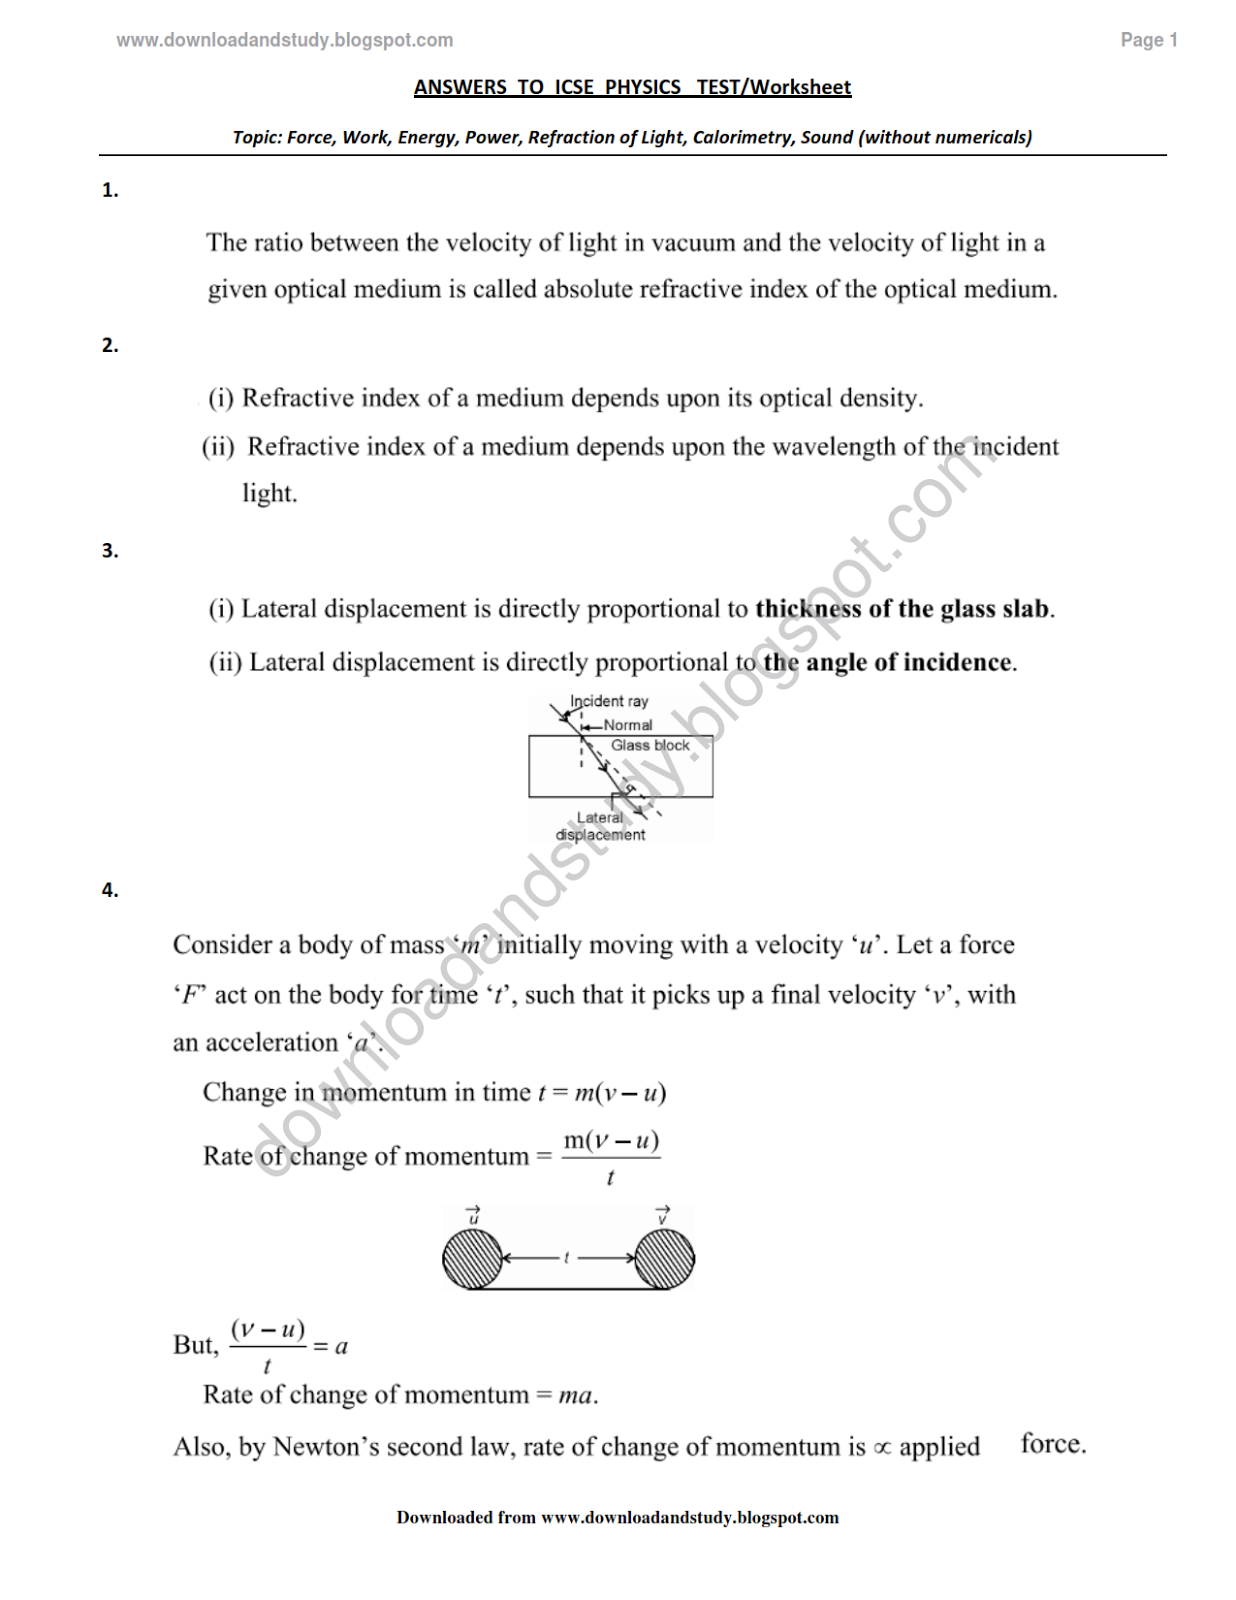 Download Amp Study Solution To Icse Physics Test Worksheet Multiple Topics Without Numericals